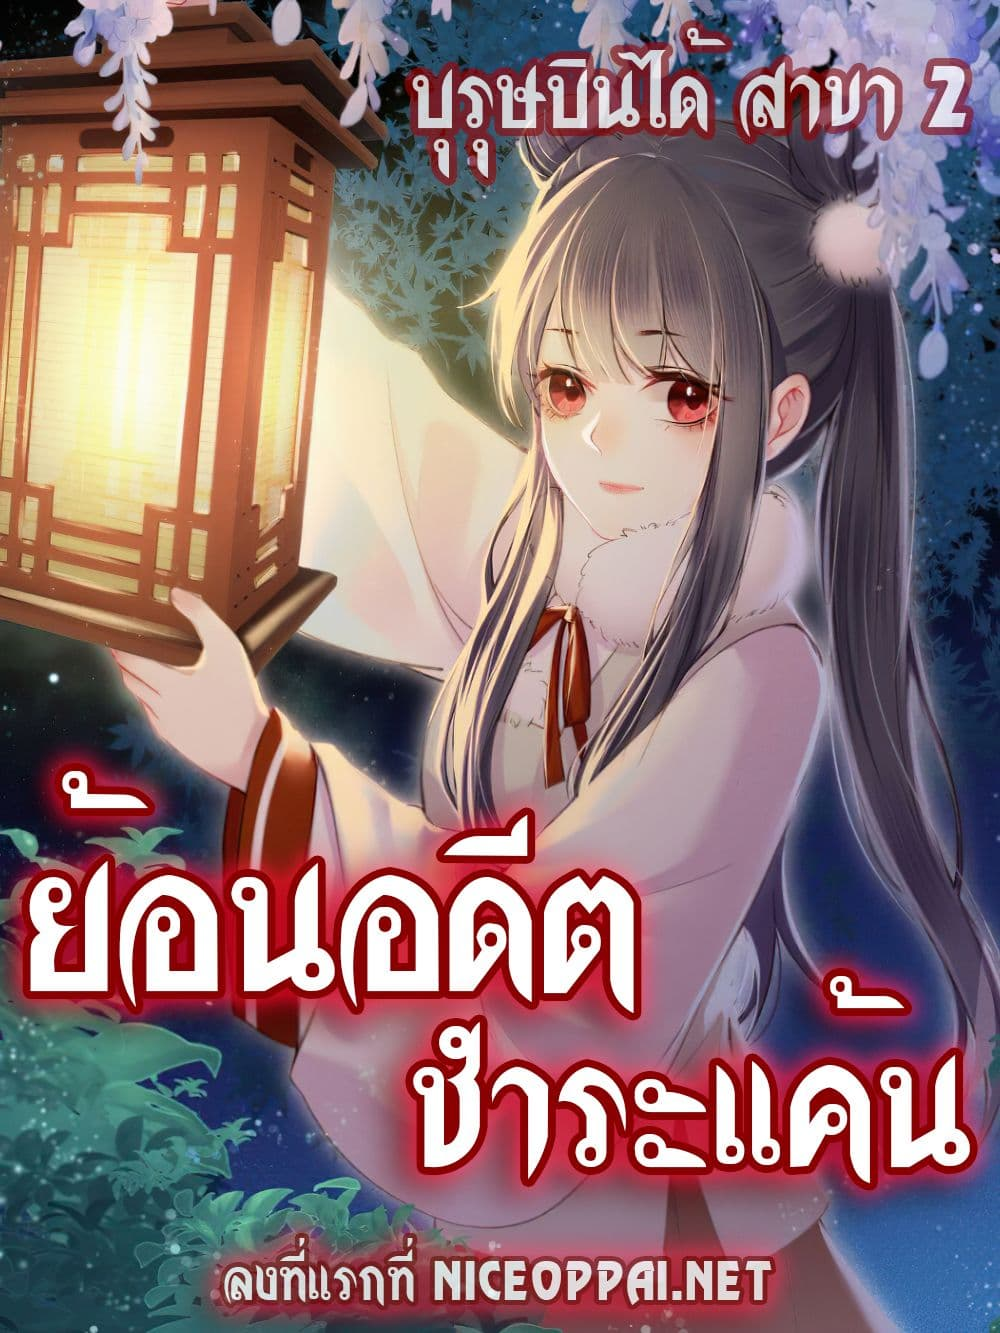 The Rebirth Daughter is not Good-ตอนที่ 9